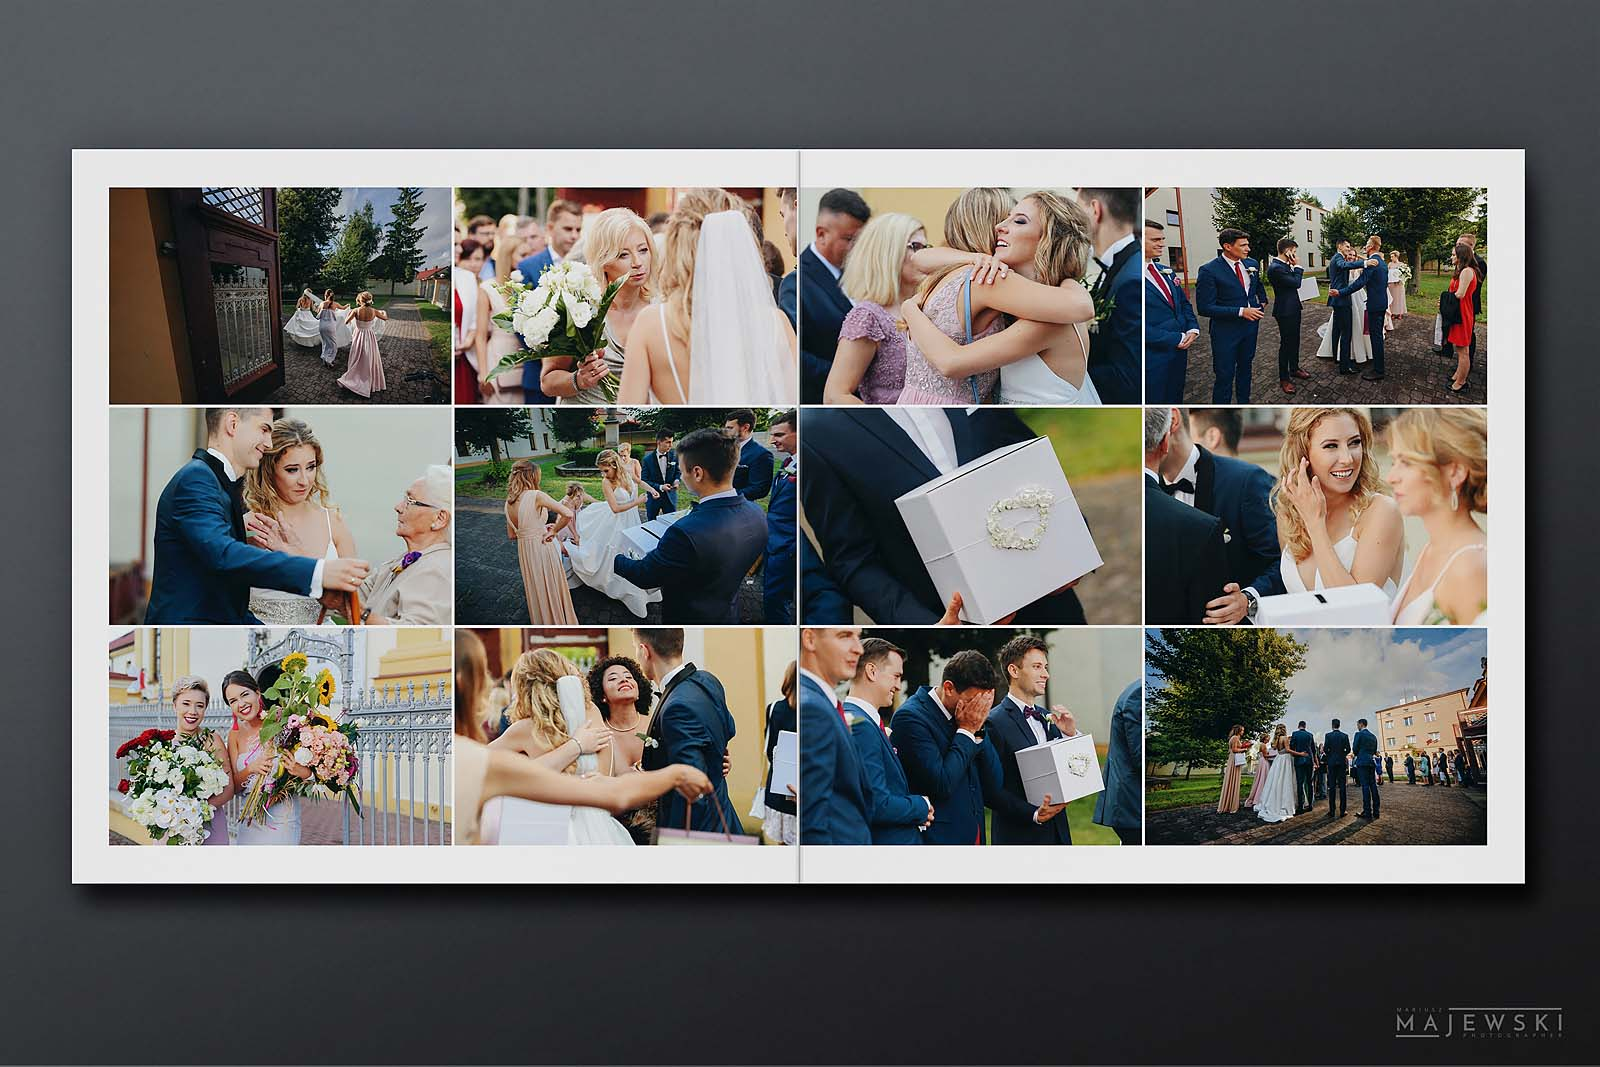 wedding-photo-album-mariusz-majewski-16071325